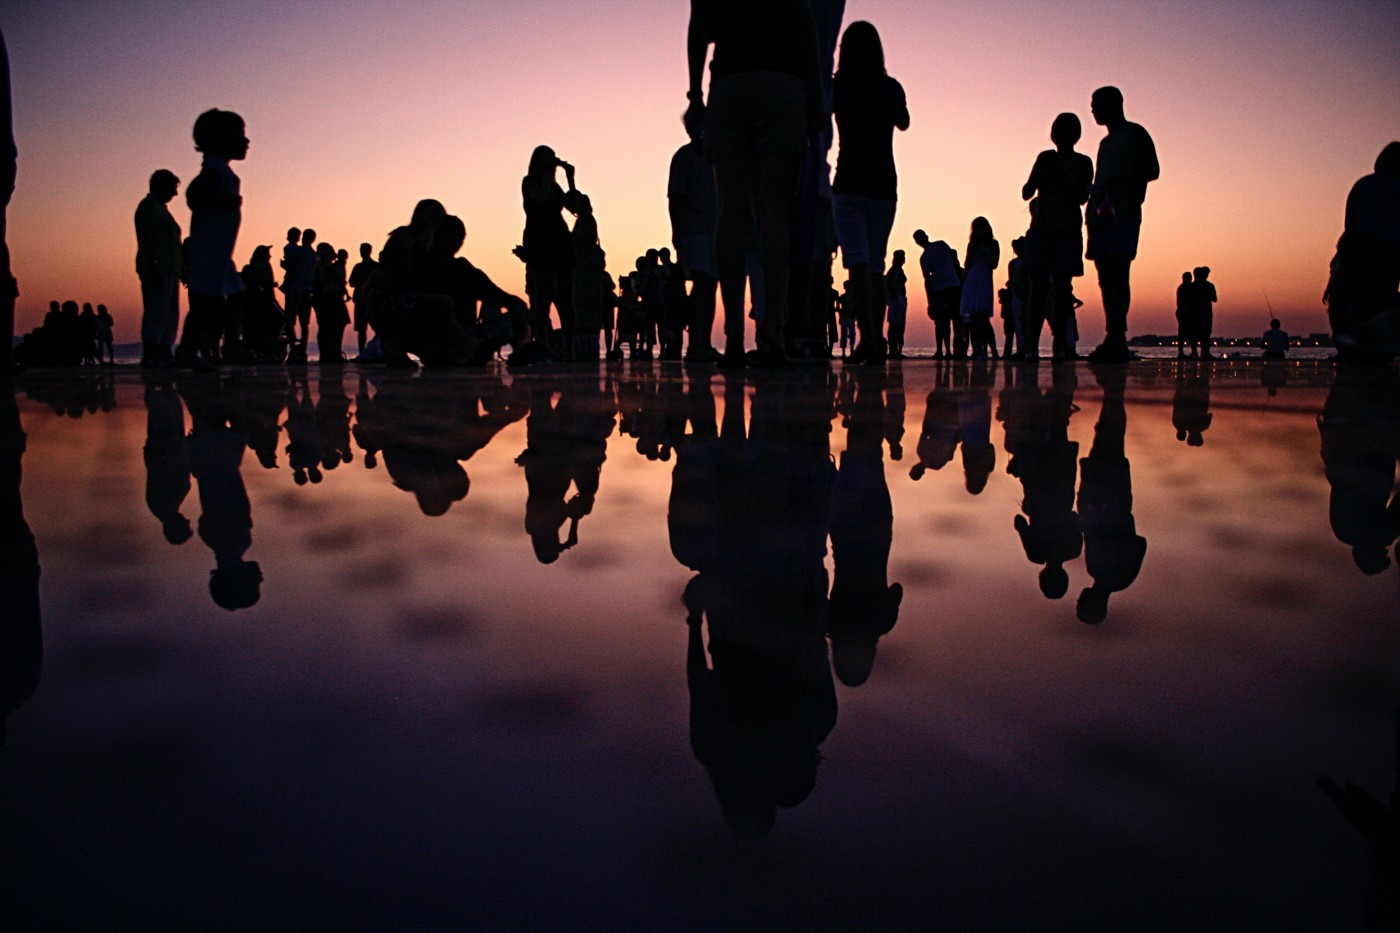 Group of people gathered at a beach at dusk, their silhouettes reflecting in the water.